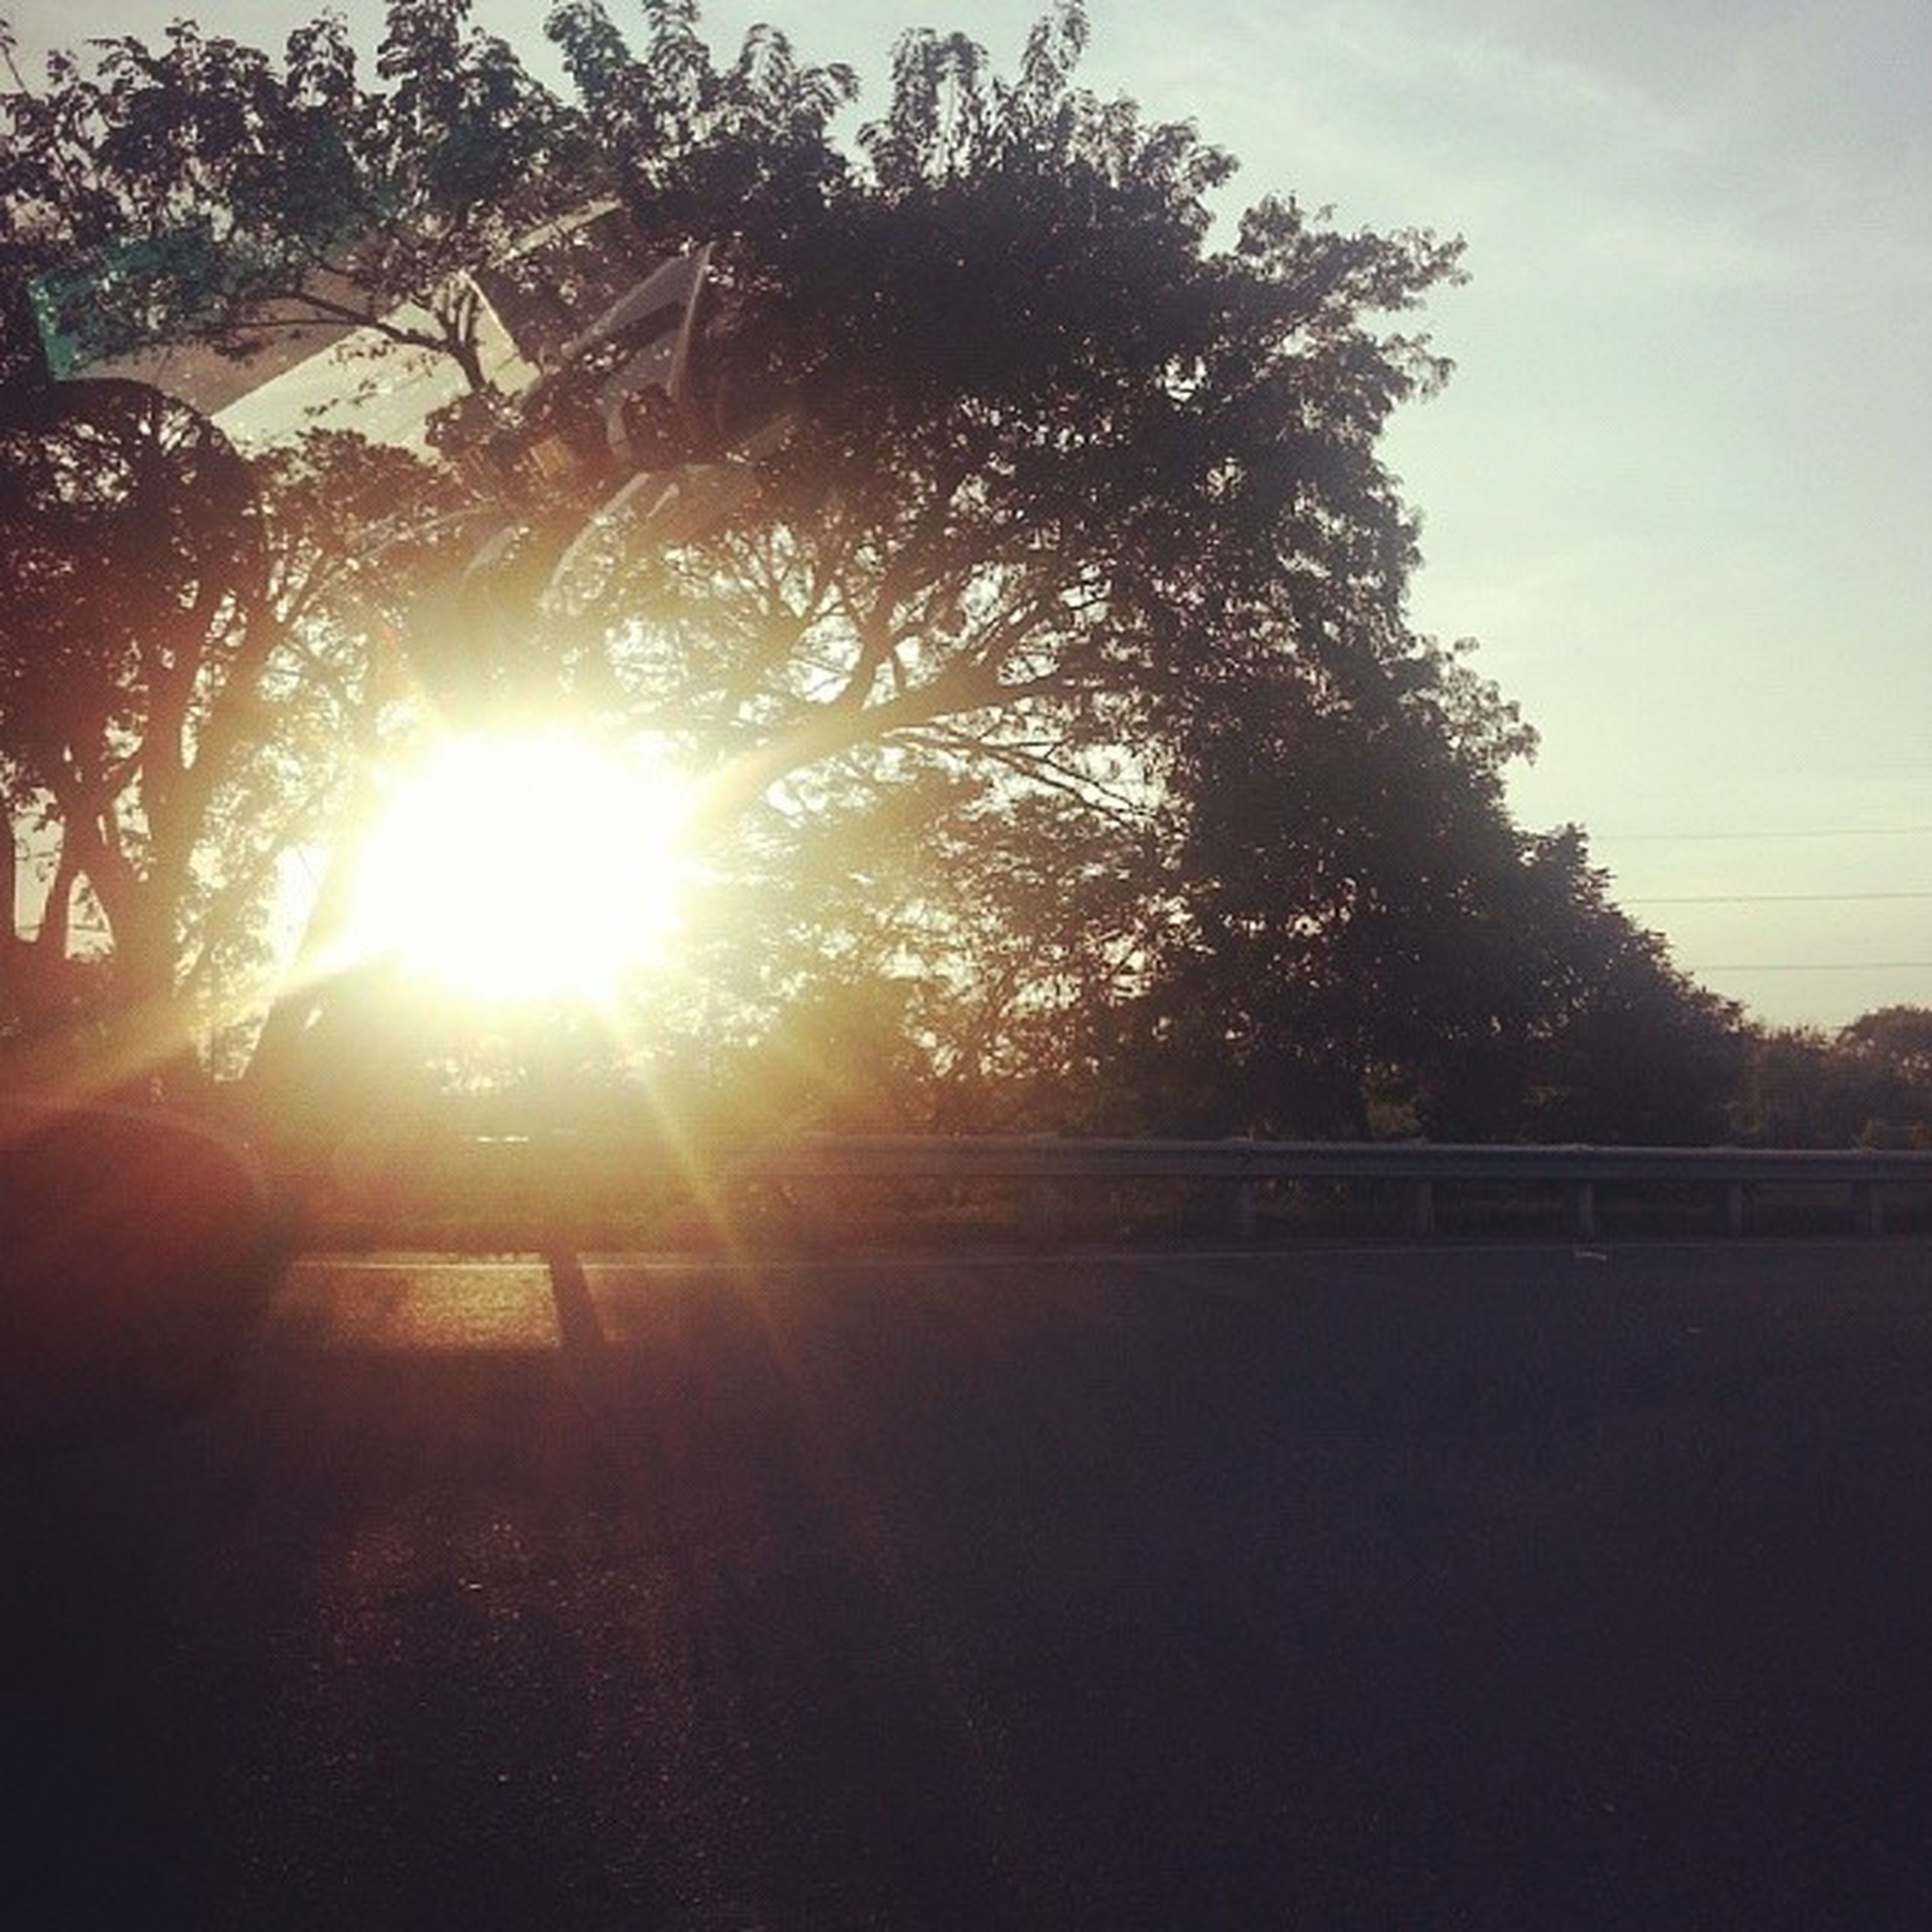 sun, sunbeam, sunlight, tree, lens flare, sunset, sky, silhouette, bright, nature, sunny, tranquility, outdoors, back lit, transportation, no people, road, beauty in nature, growth, tranquil scene